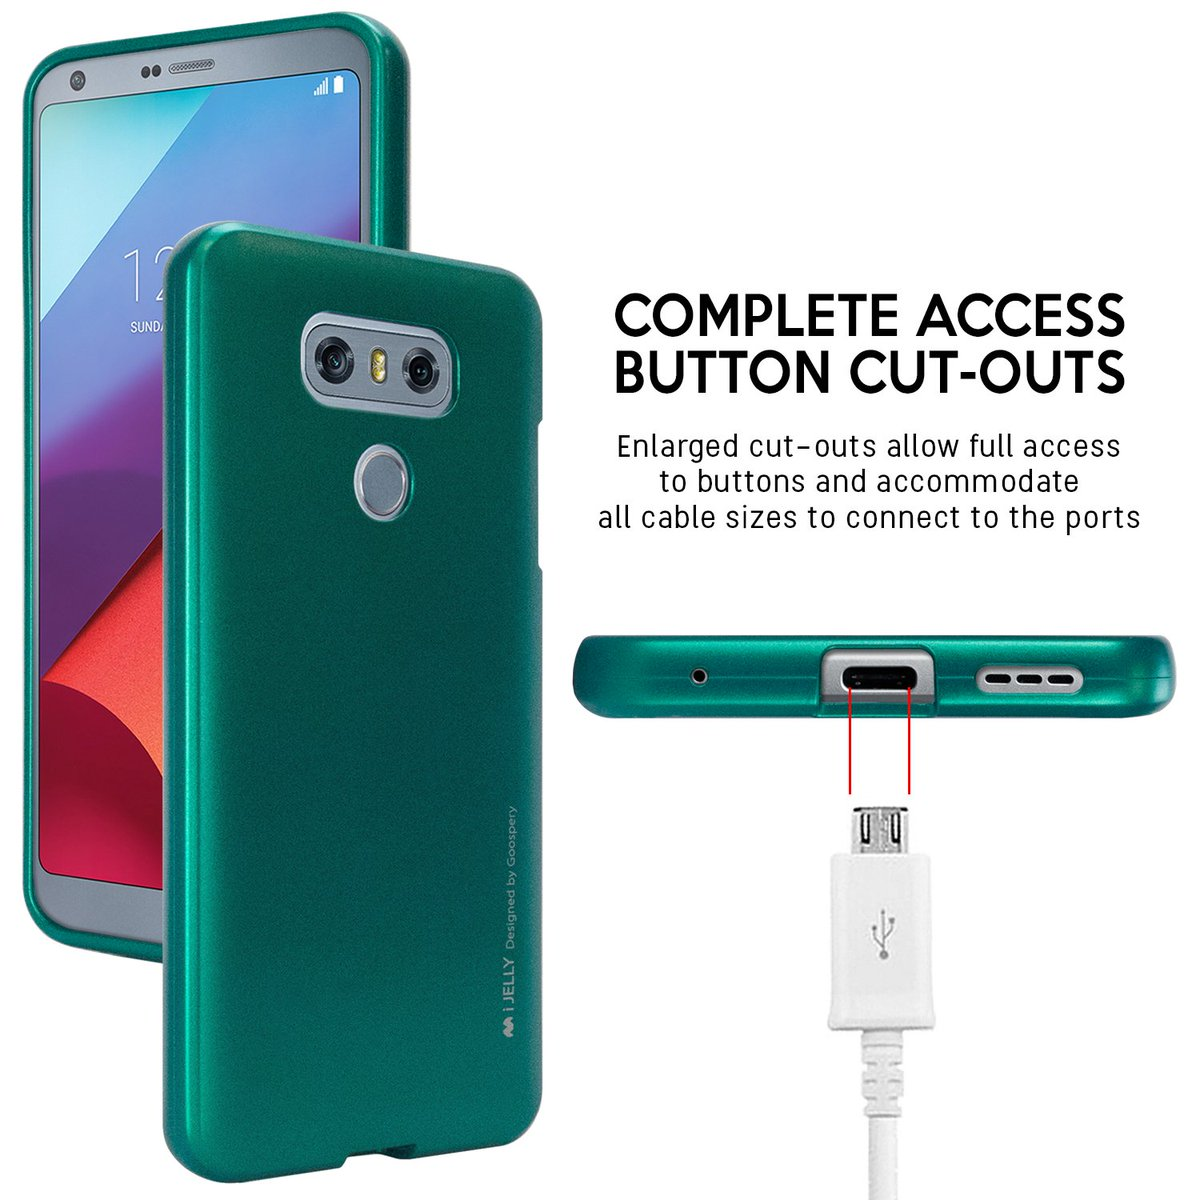 Goospery Hashtag On Twitter Iphone 7 Plus Canvas Diary Case Navy Phonecases Ebay Http Ebaycom Itm For Lg G6 In Stock I Jelly Slim Cover Thin Protective Bumper 122388505512varhashitem1c7eec63a8